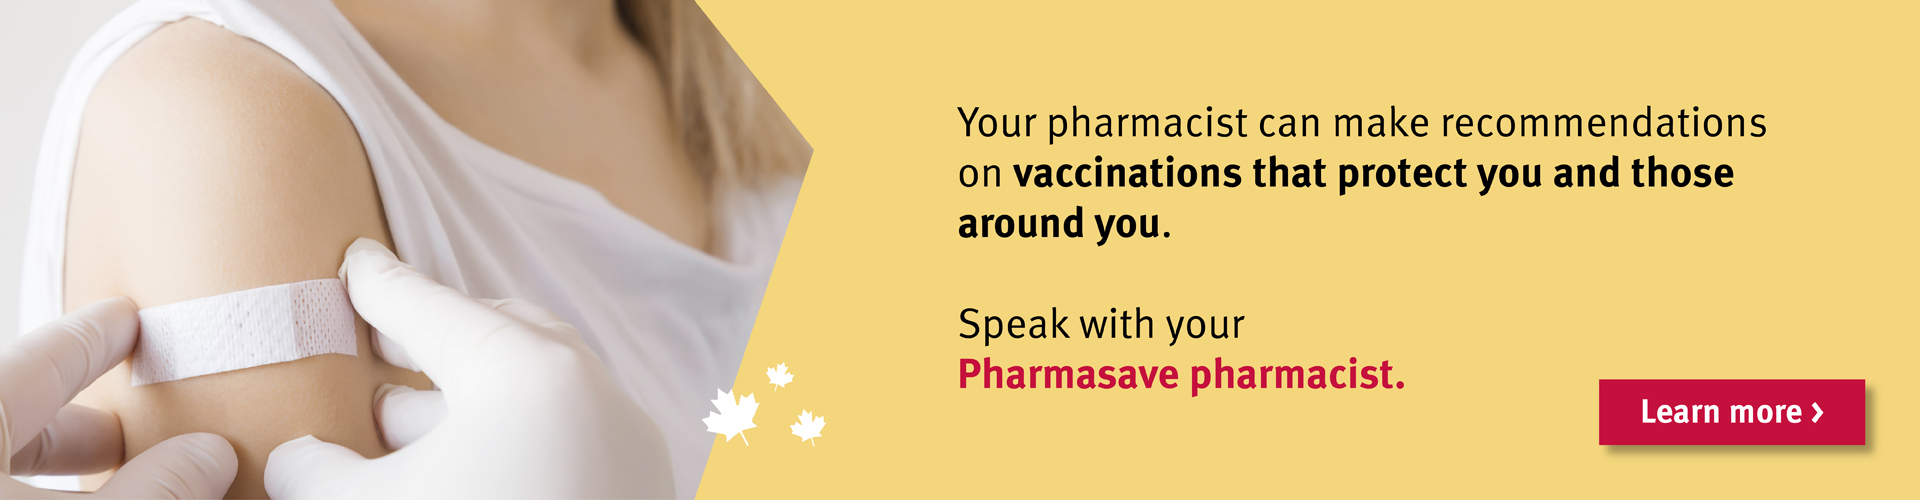 Speak with your pharmacist about getting your vaccinations up to date.